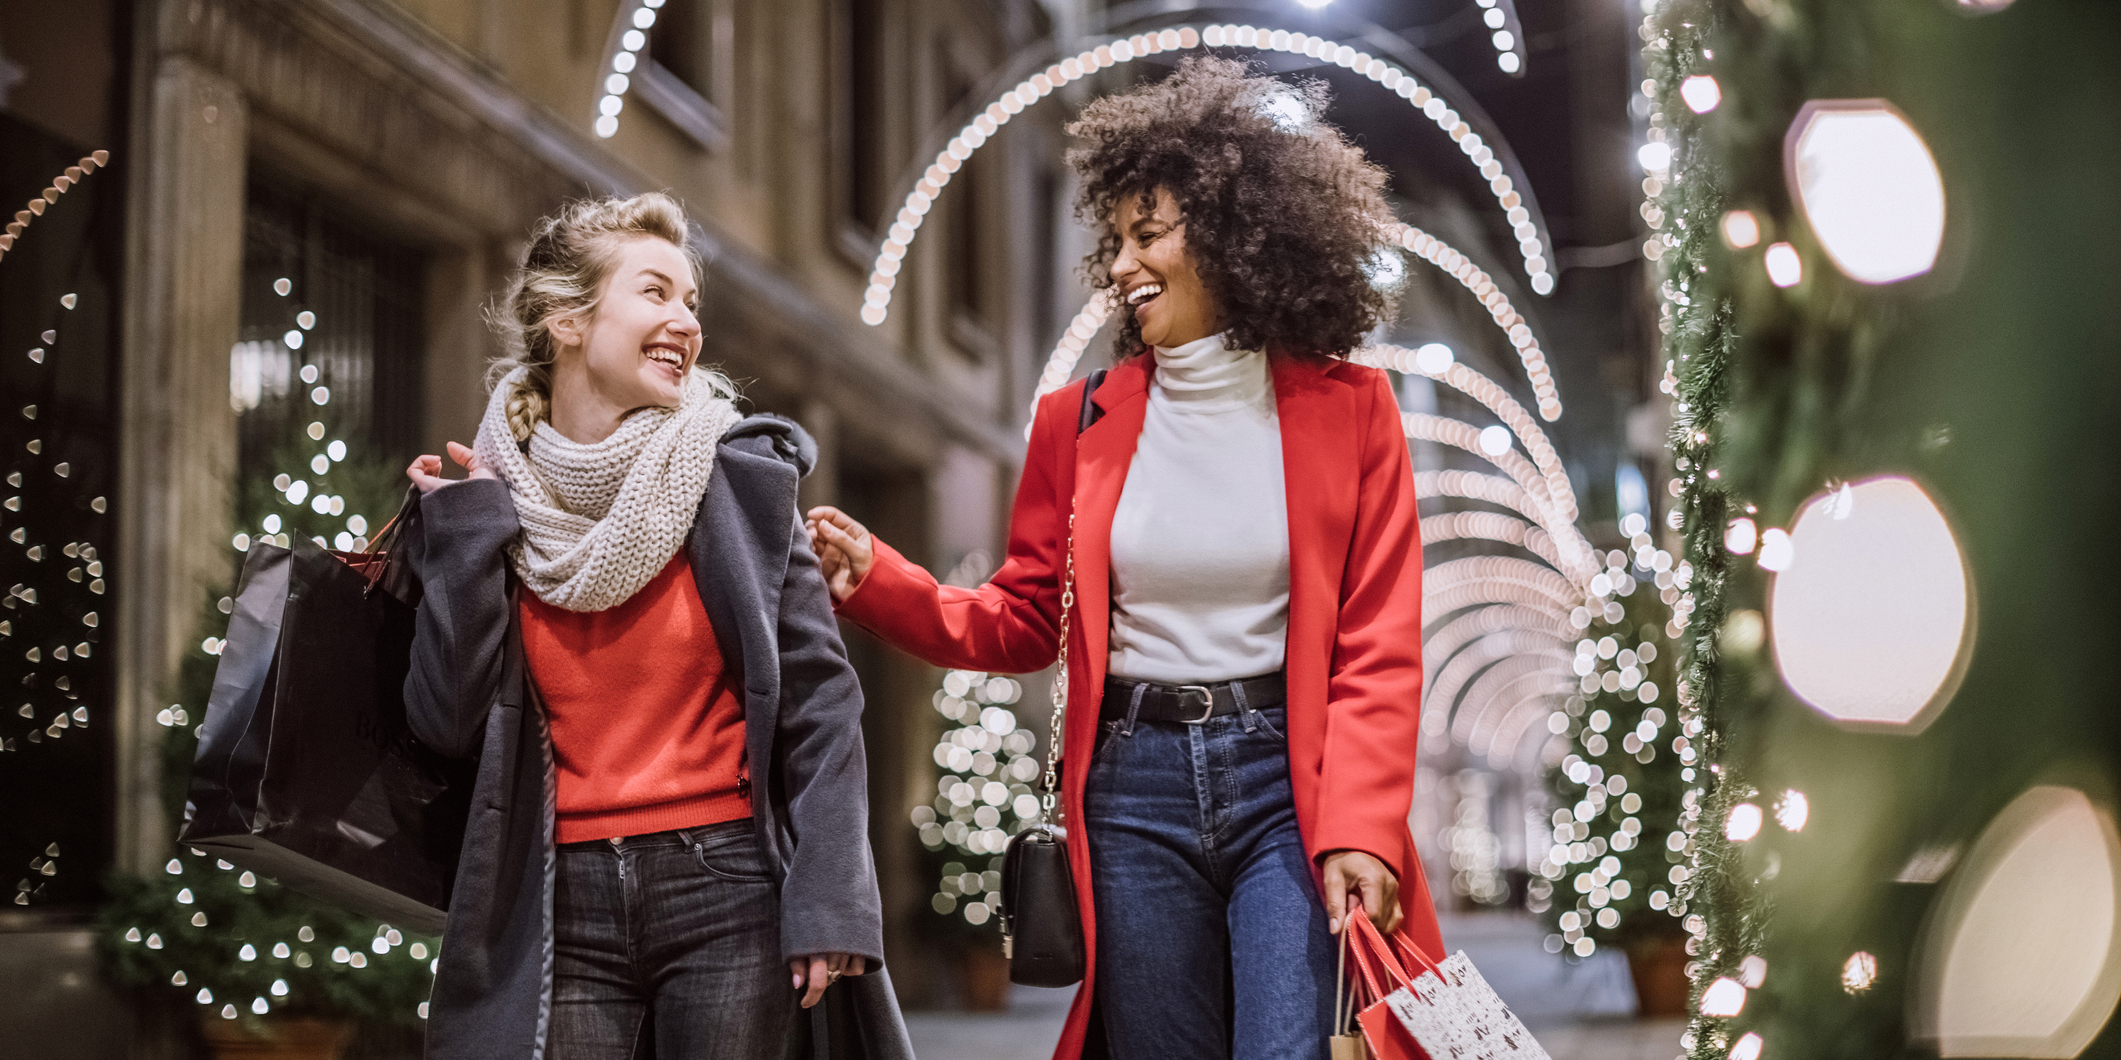 How Malls Can Whip Up Some Modern Holiday Magic